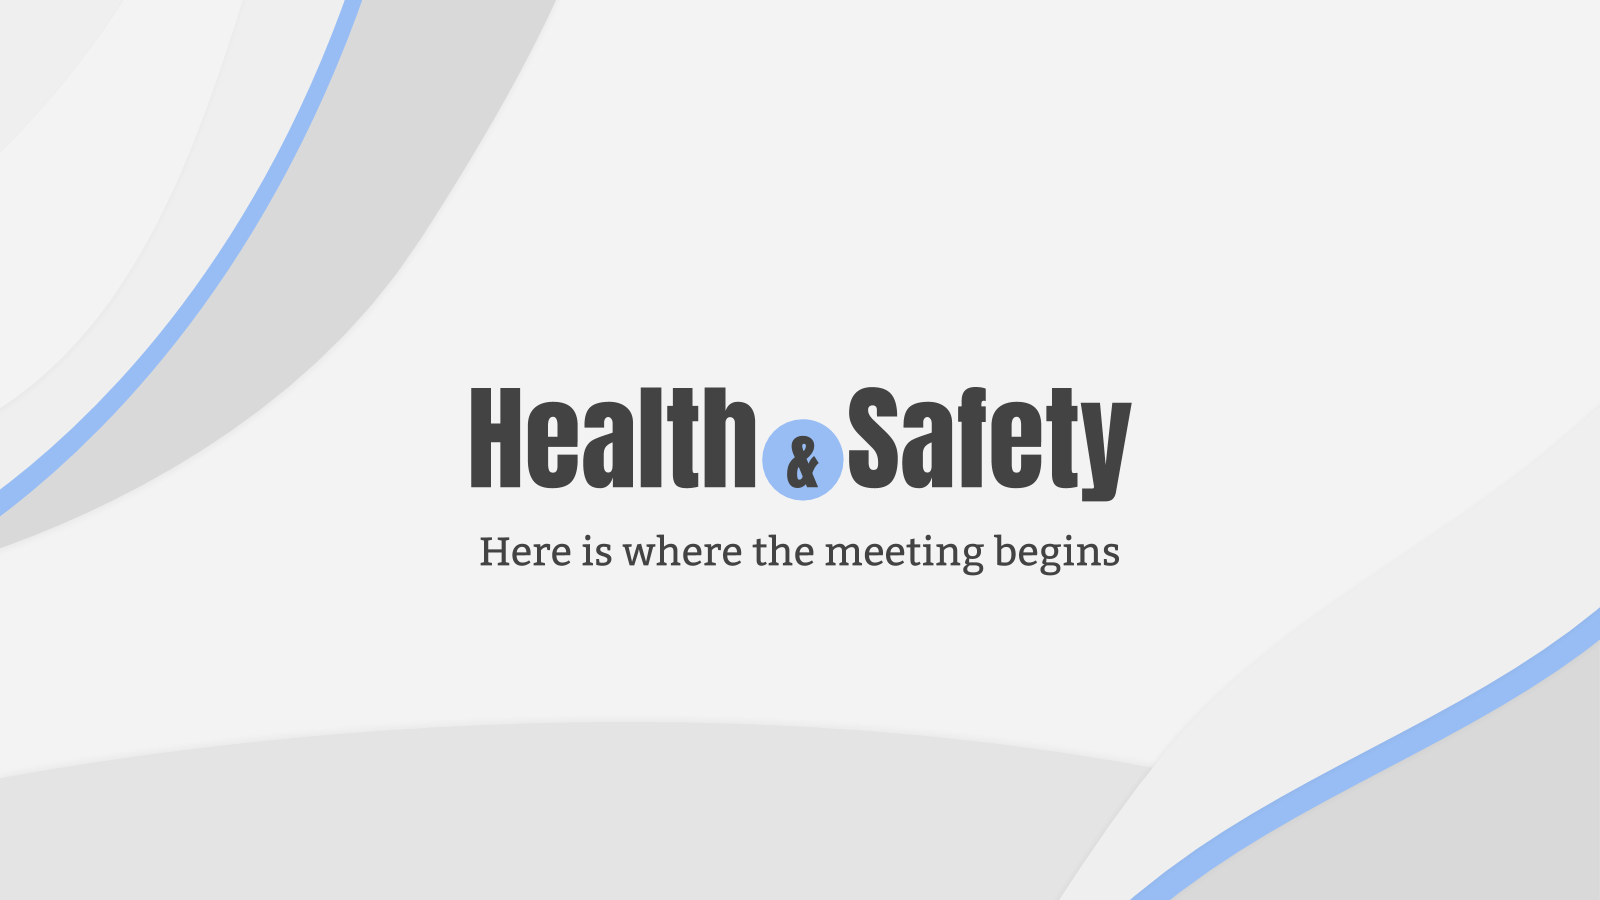 Health & Safety Meeting presentation template